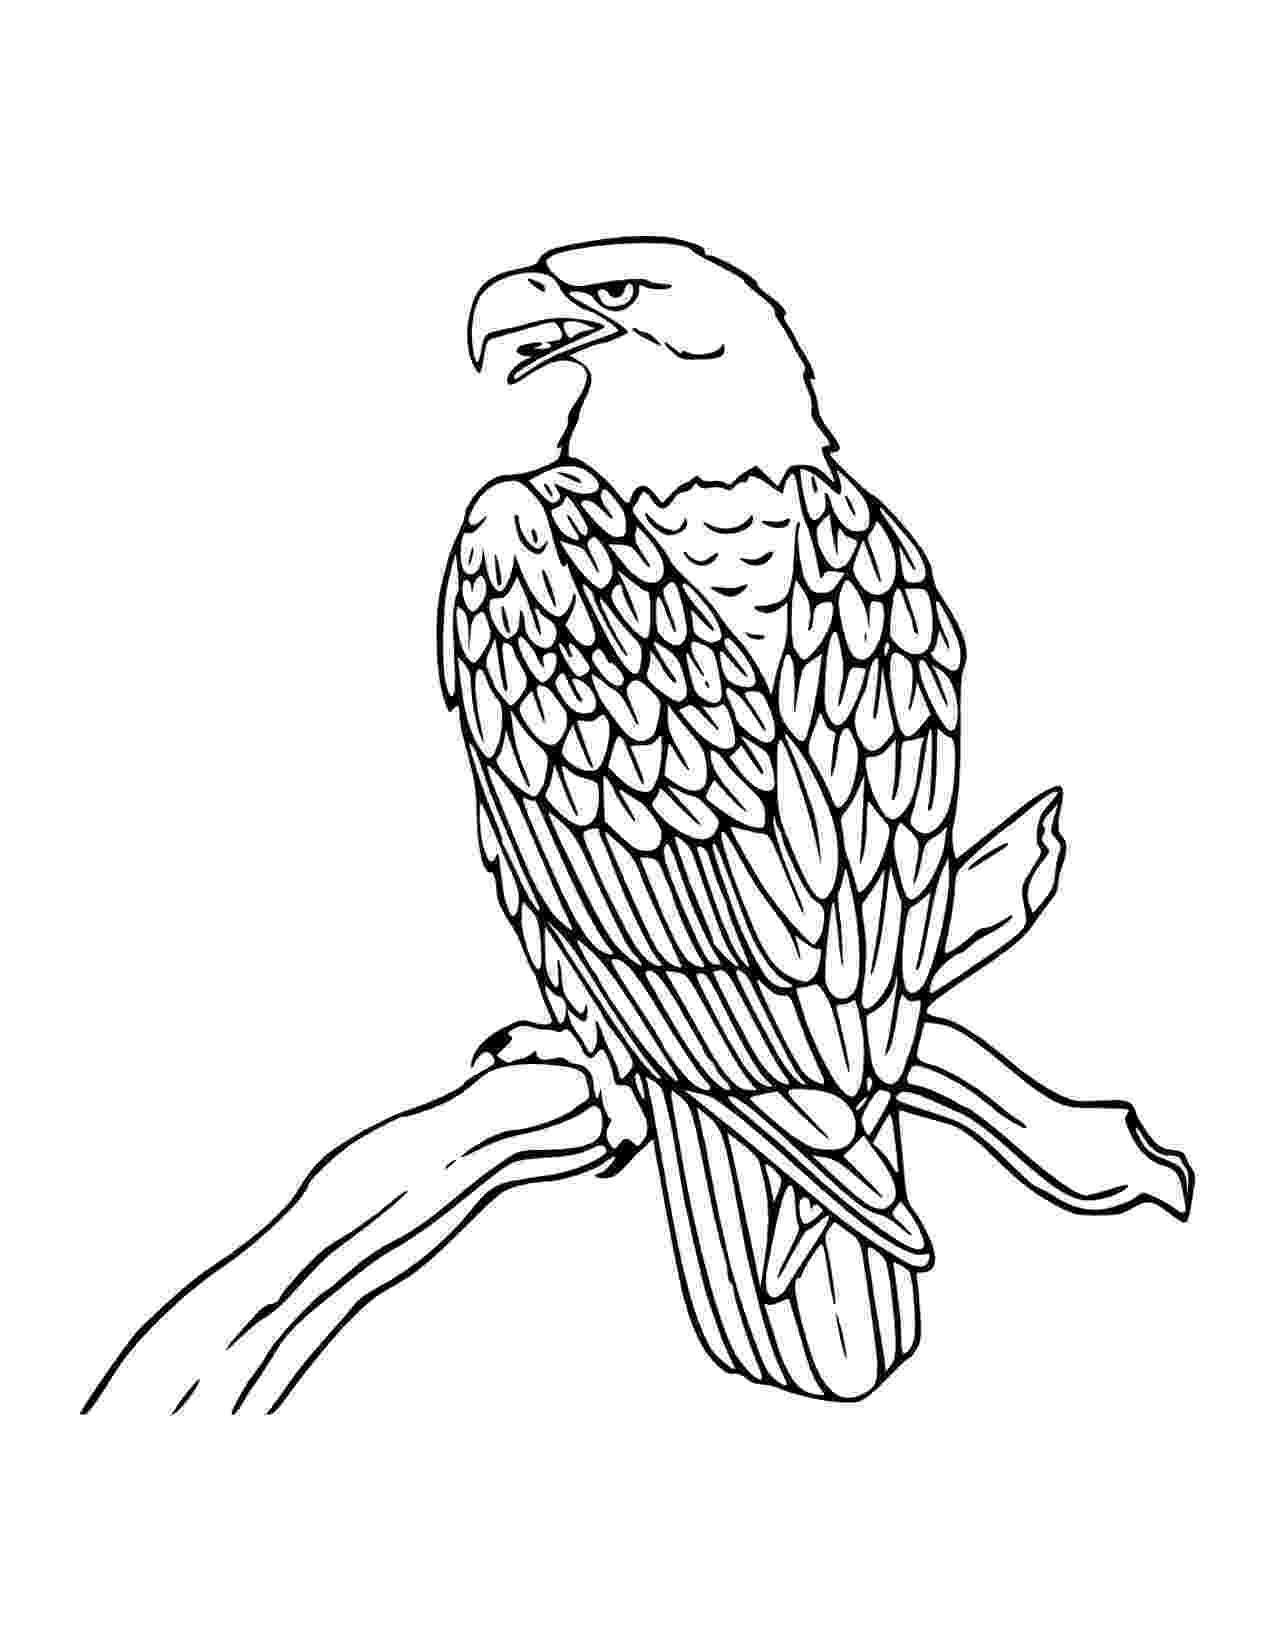 eagle pictures to color free printable eagle coloring pages for kids eagle pictures color to